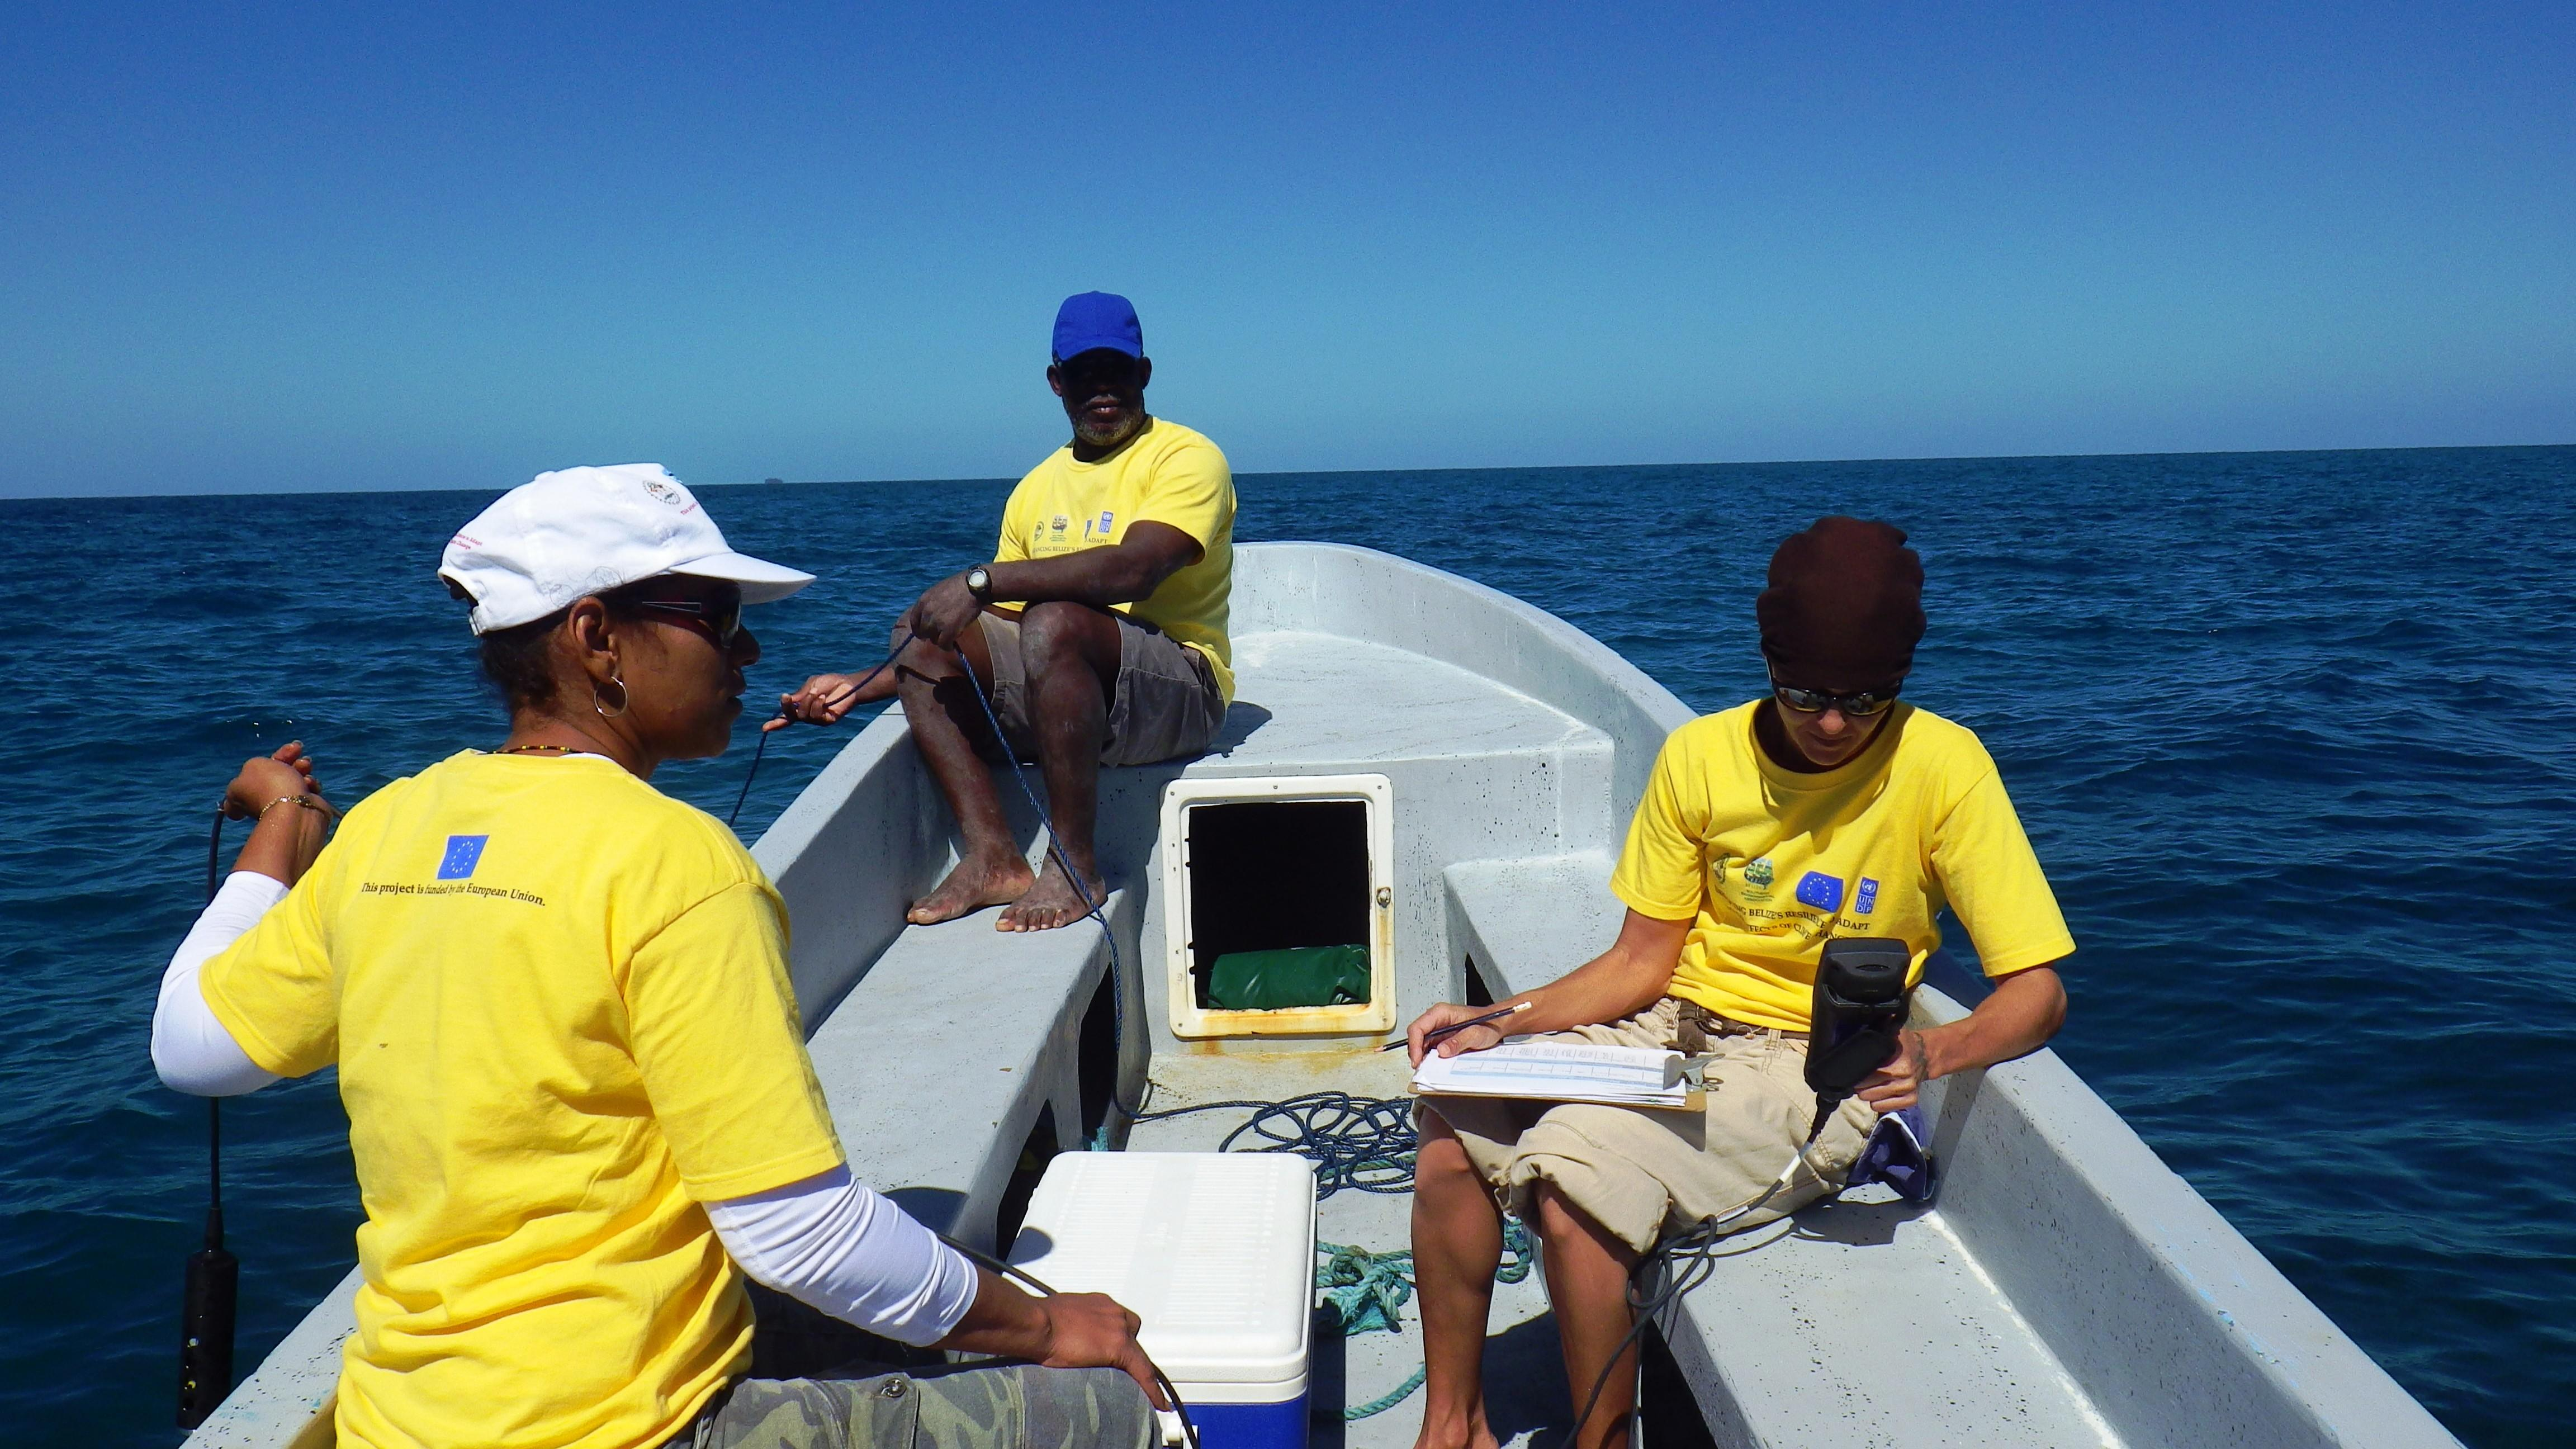 A volunteer and local experts take a boat trip to gather some data whilst on a diving and marine conservation work experience project in Belize with Projects Abroad.